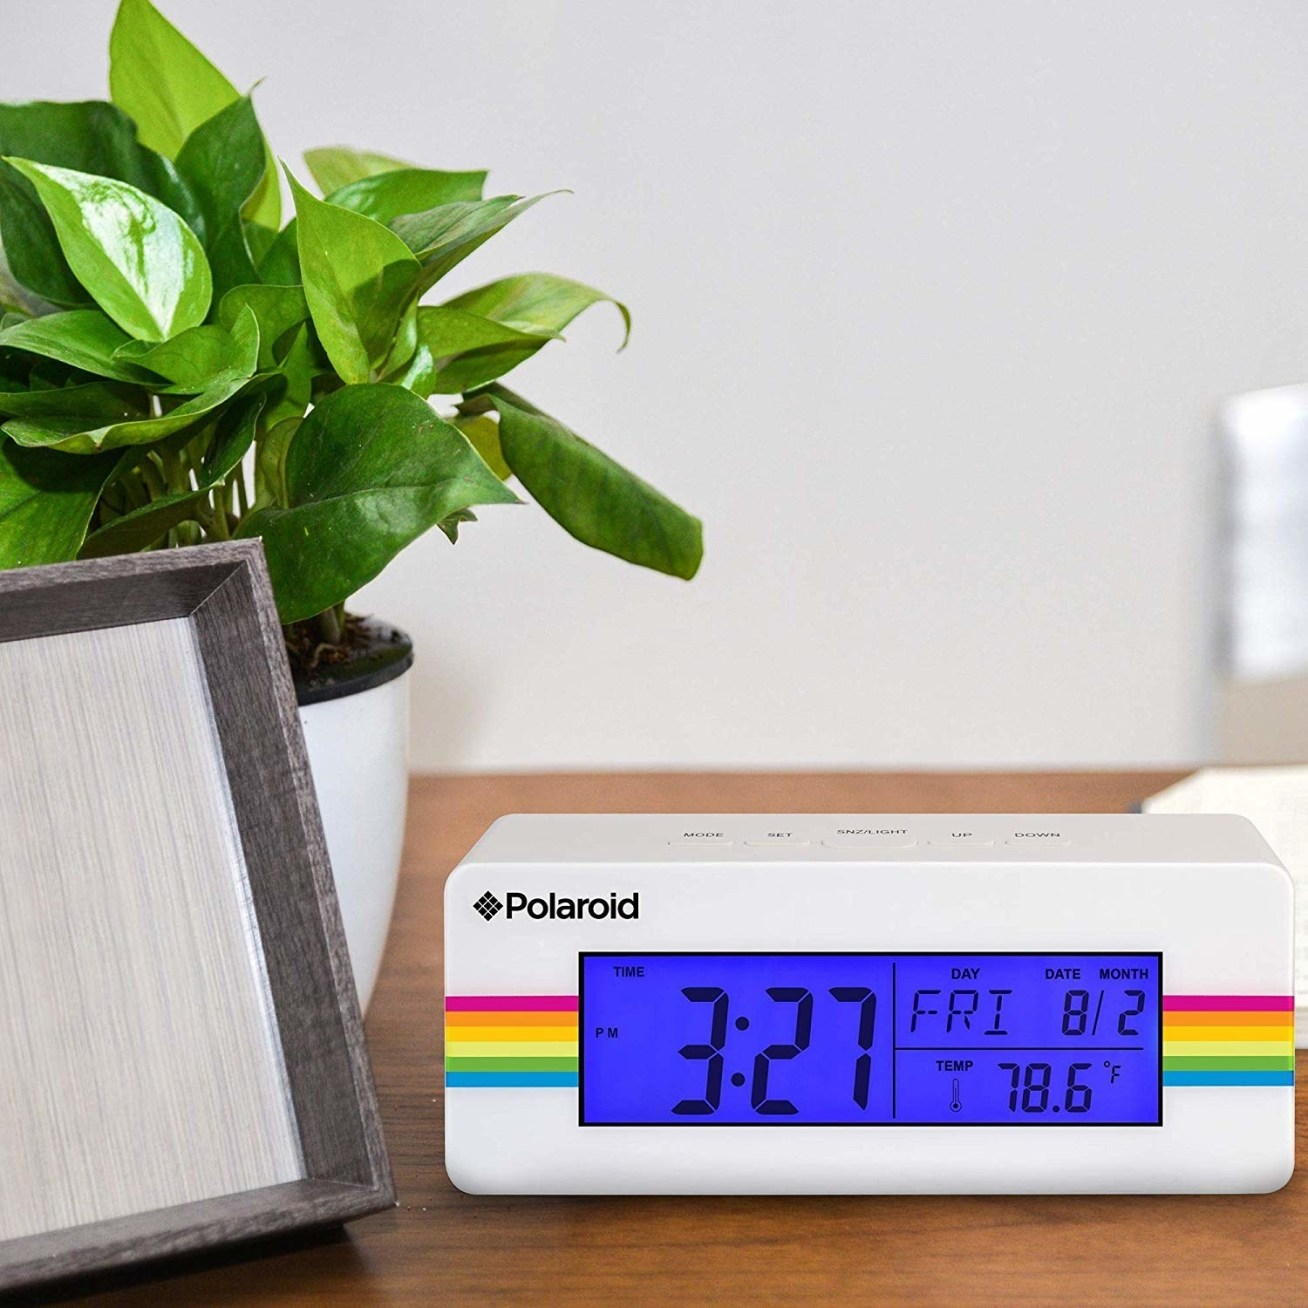 """This clock has dual time display, an indoor temperature display, a calendar display, and alarm and snooze option. It runs on three AAA batteries (not included).Promising review: """"This clock is exactly what I needed. It's a really great compact alarm. It has all the bells and whistles. I'm very happy with it, except having it wake me up."""" —Amazon CustomerGet it from Amazon for .97.Retro not your dad's style? Head to """"33 Tech And Gadget Father's Day Gifts For Every Kind Of Dad"""" to find just the right gizmo for him."""